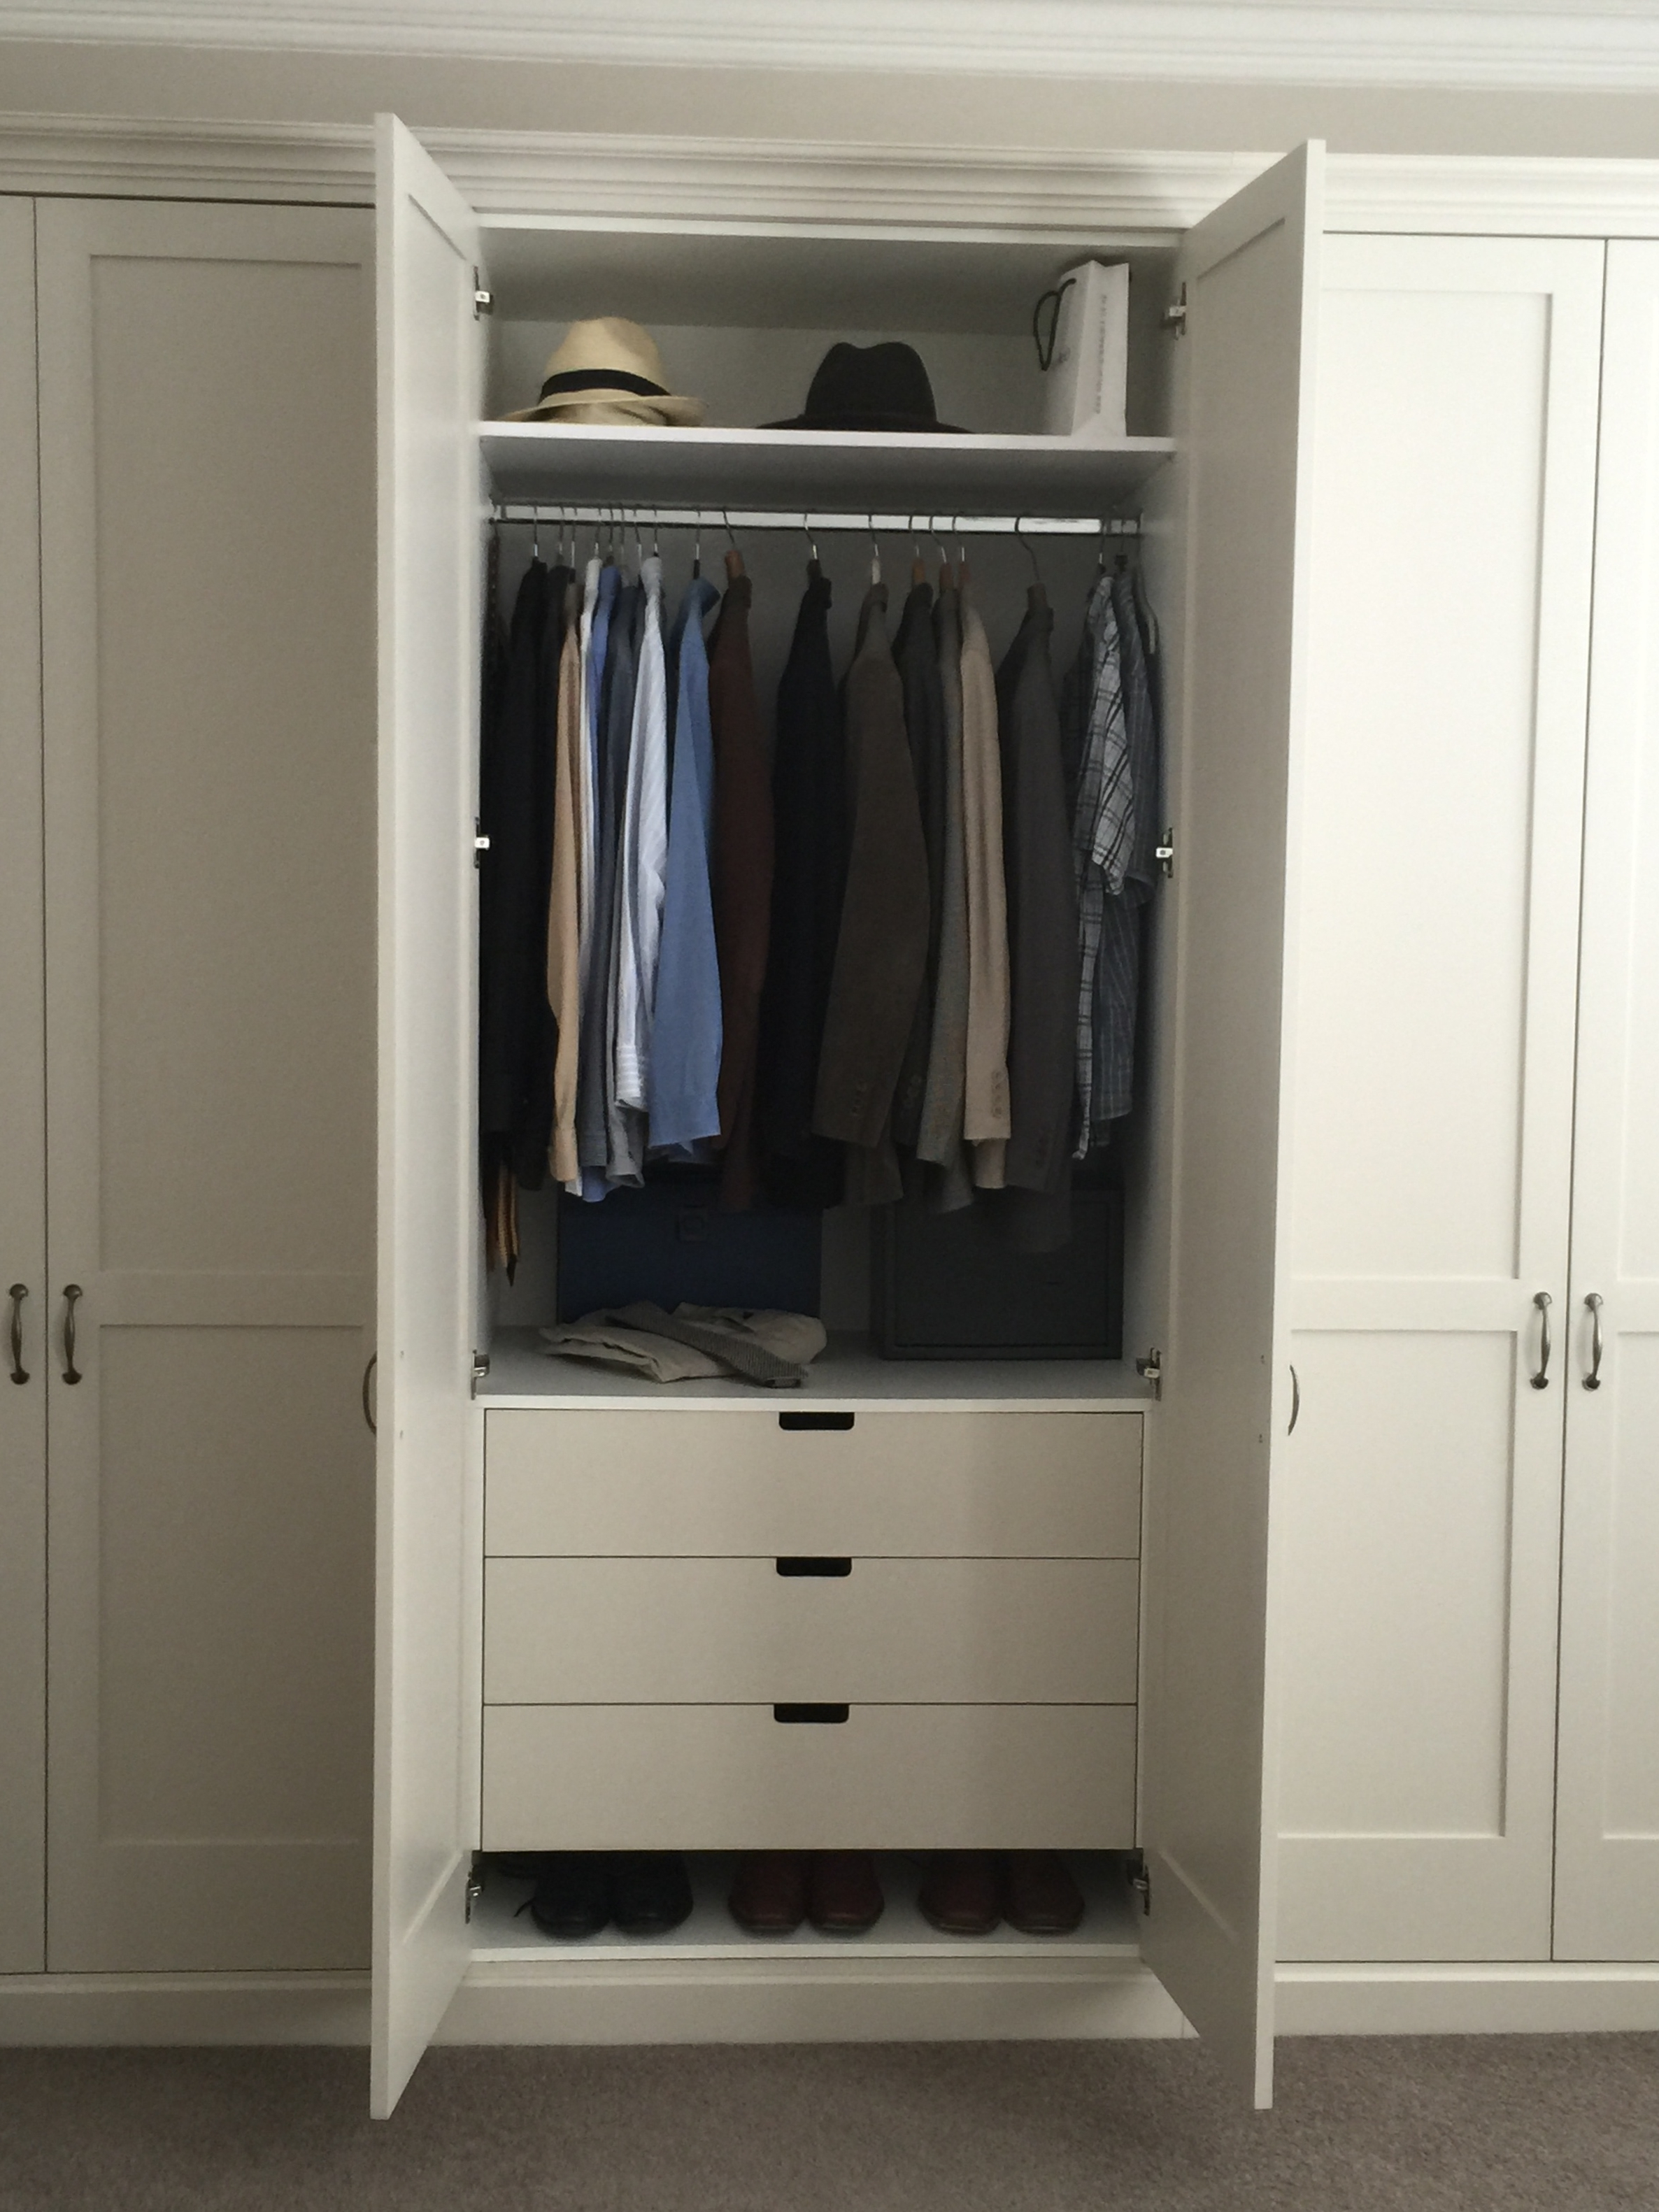 Best And Newest Traditional Shaker Wardrobes, With Drawers Inside, Shelves And Regarding Cheap Wardrobes With Drawers (View 3 of 15)